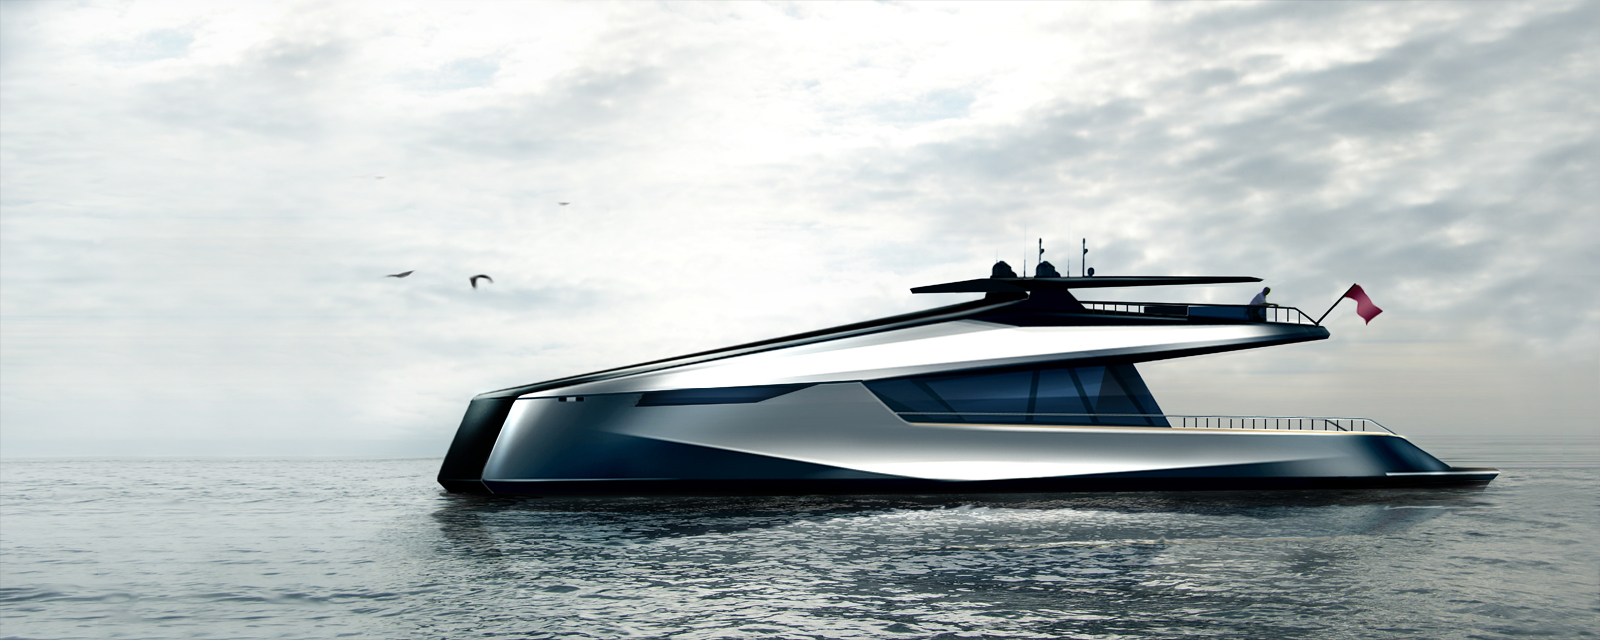 115 39 jfa and peugeot design lab superyacht concept side view yacht charter superyacht news. Black Bedroom Furniture Sets. Home Design Ideas